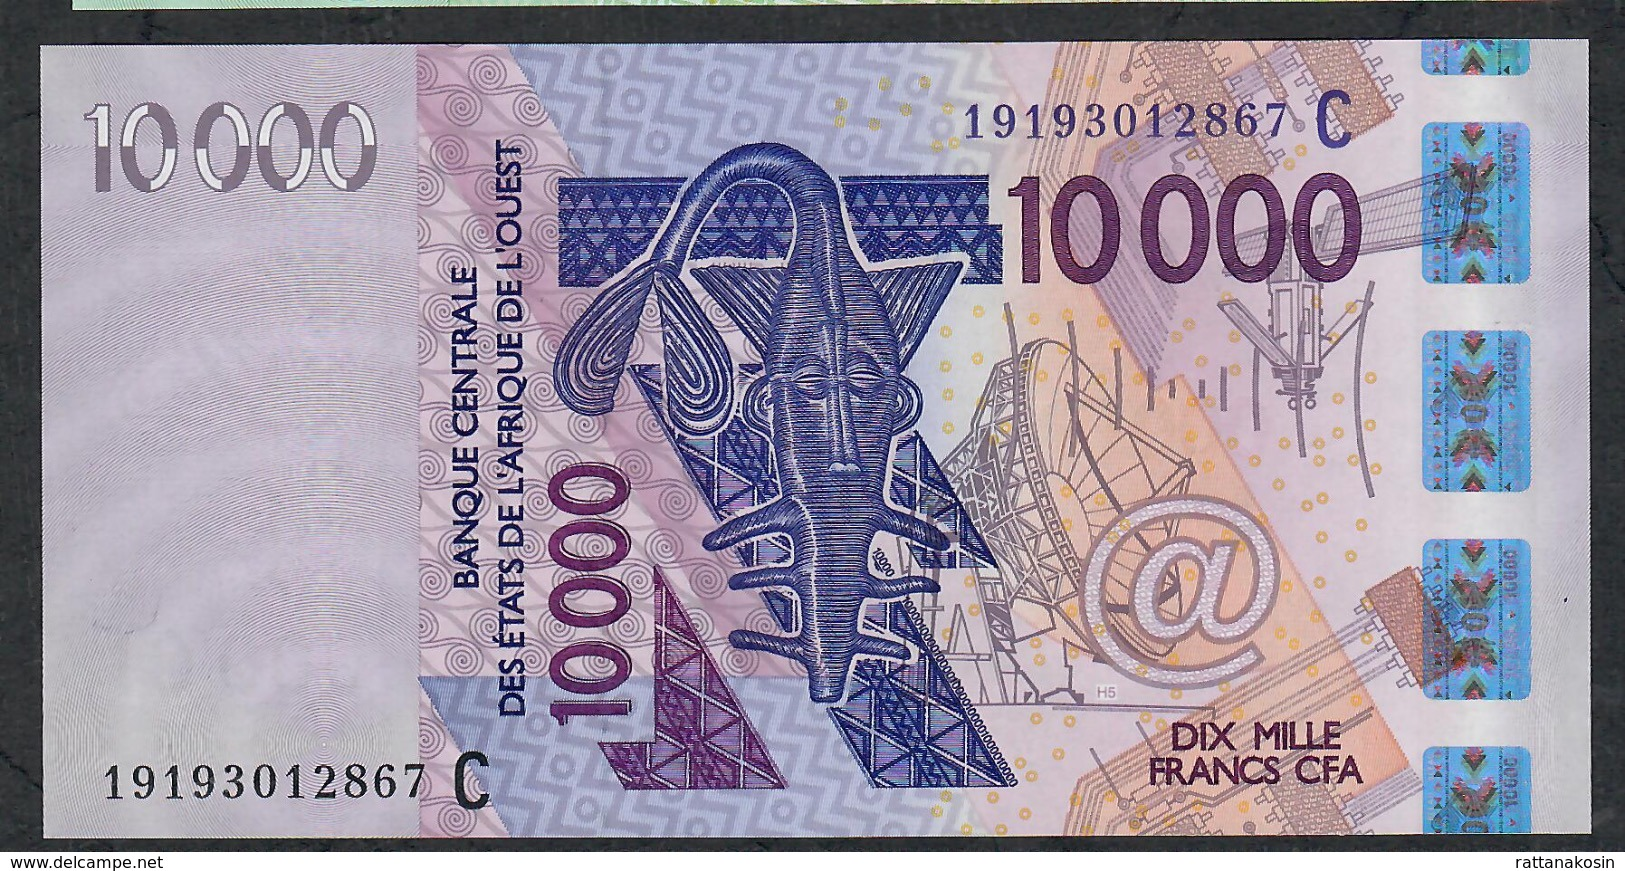 W.A.S. BURKINA FASO P318Cs  10000  OR 10.000 FRANCS (20)19 2019 UNC. - West African States